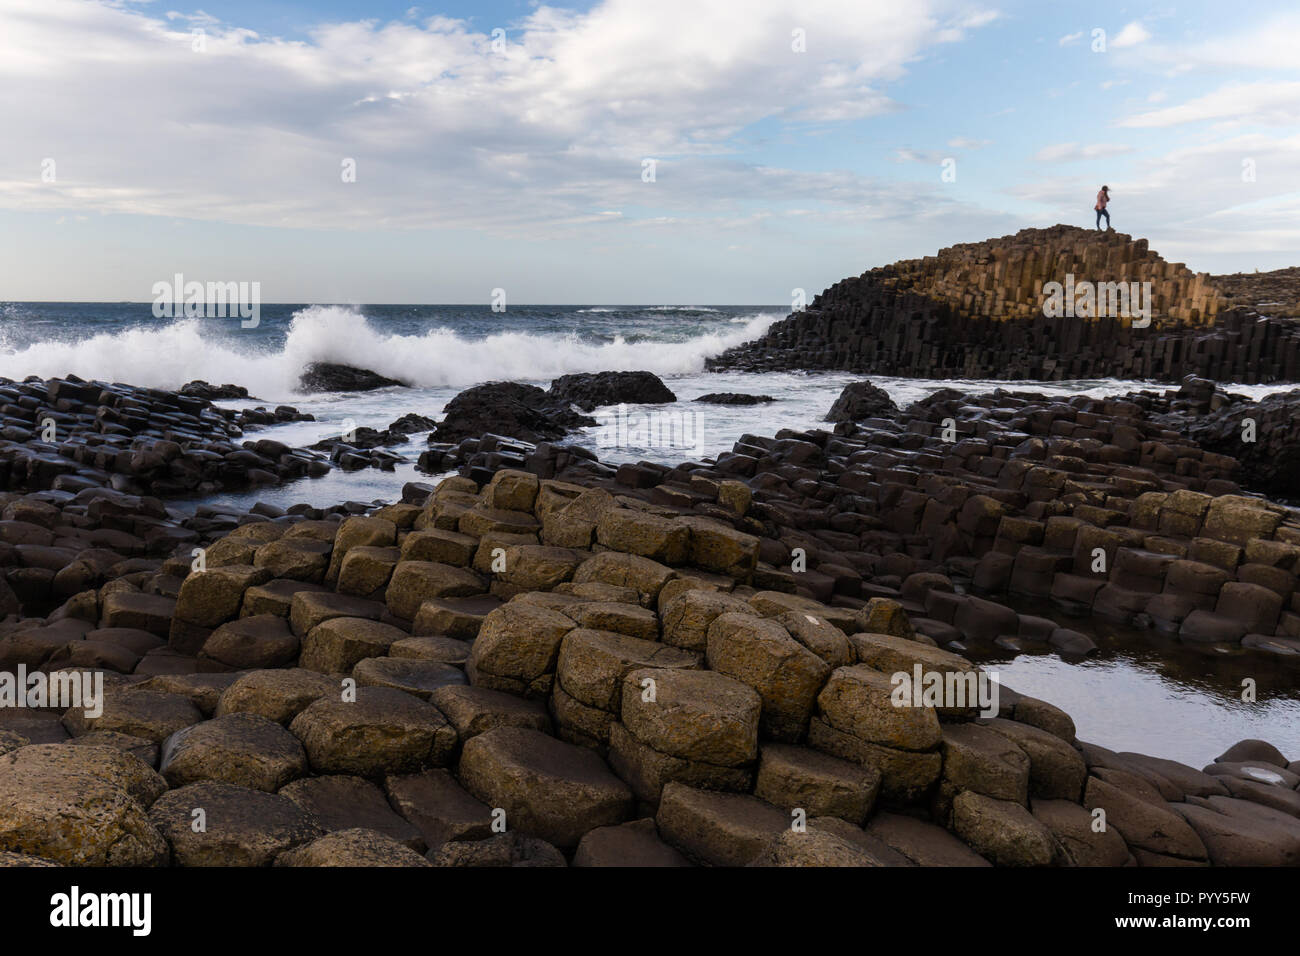 Tourist enjoying a bright sunny afternoon at the top of Northern Ireland's top attraction, The Giant's Causeway, with thousands of basalt hexagonal co - Stock Image